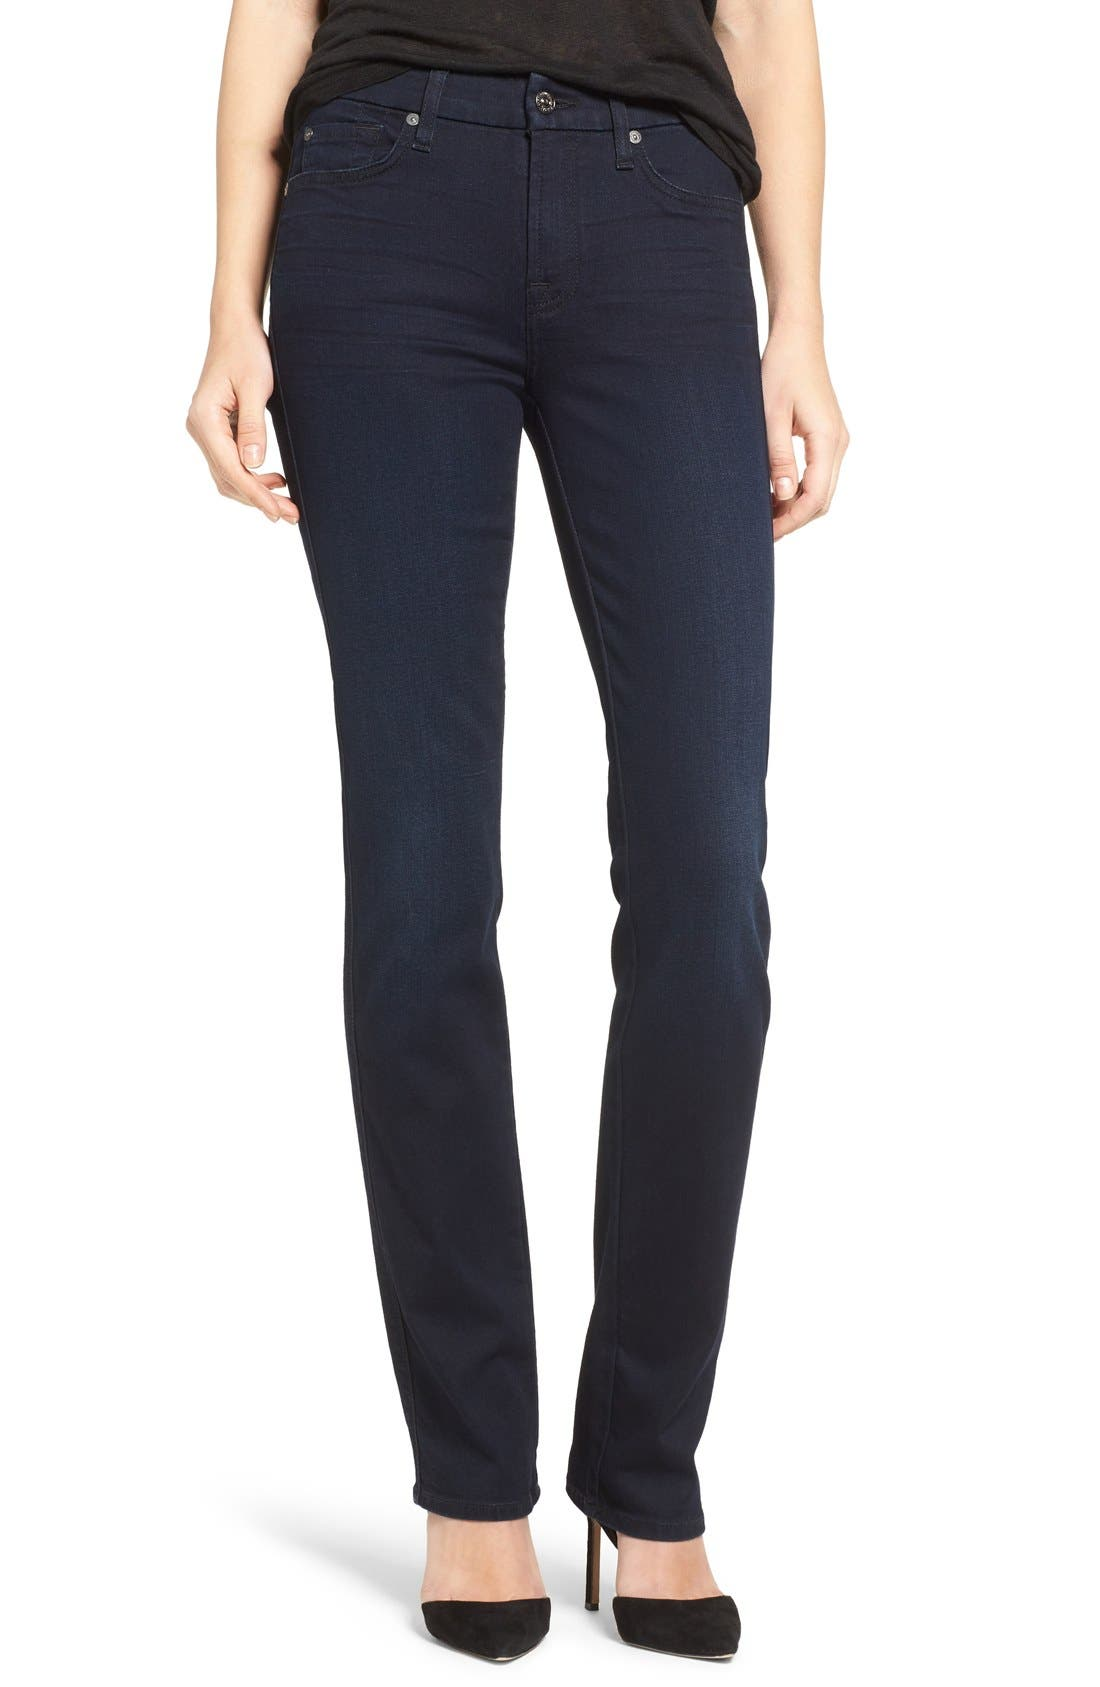 Alternate Image 1 Selected - 7 For All Mankind® 'b(air) - Kimmie' Straight Leg Jeans (Blue Black River Thames)